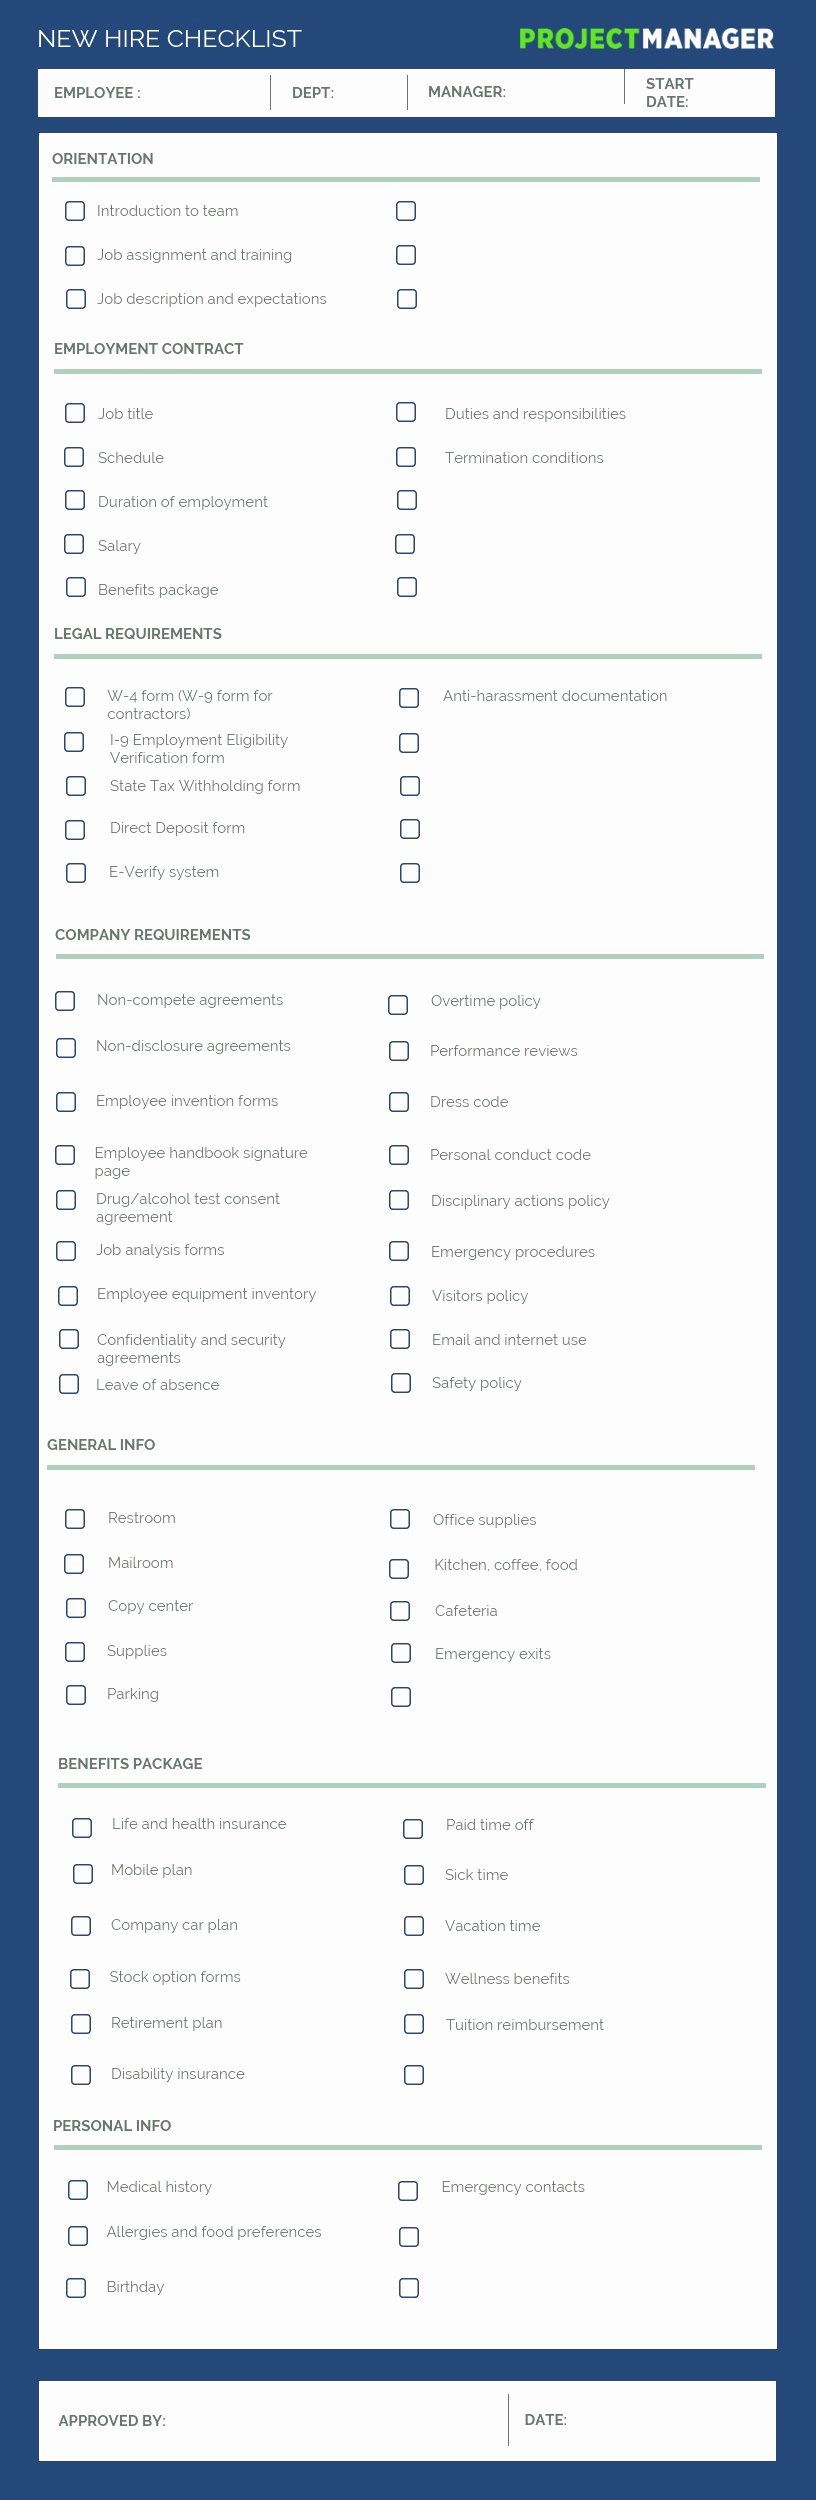 New Hire Checklist Template Unique the Perfect New Hire Checklist Use This Free Template